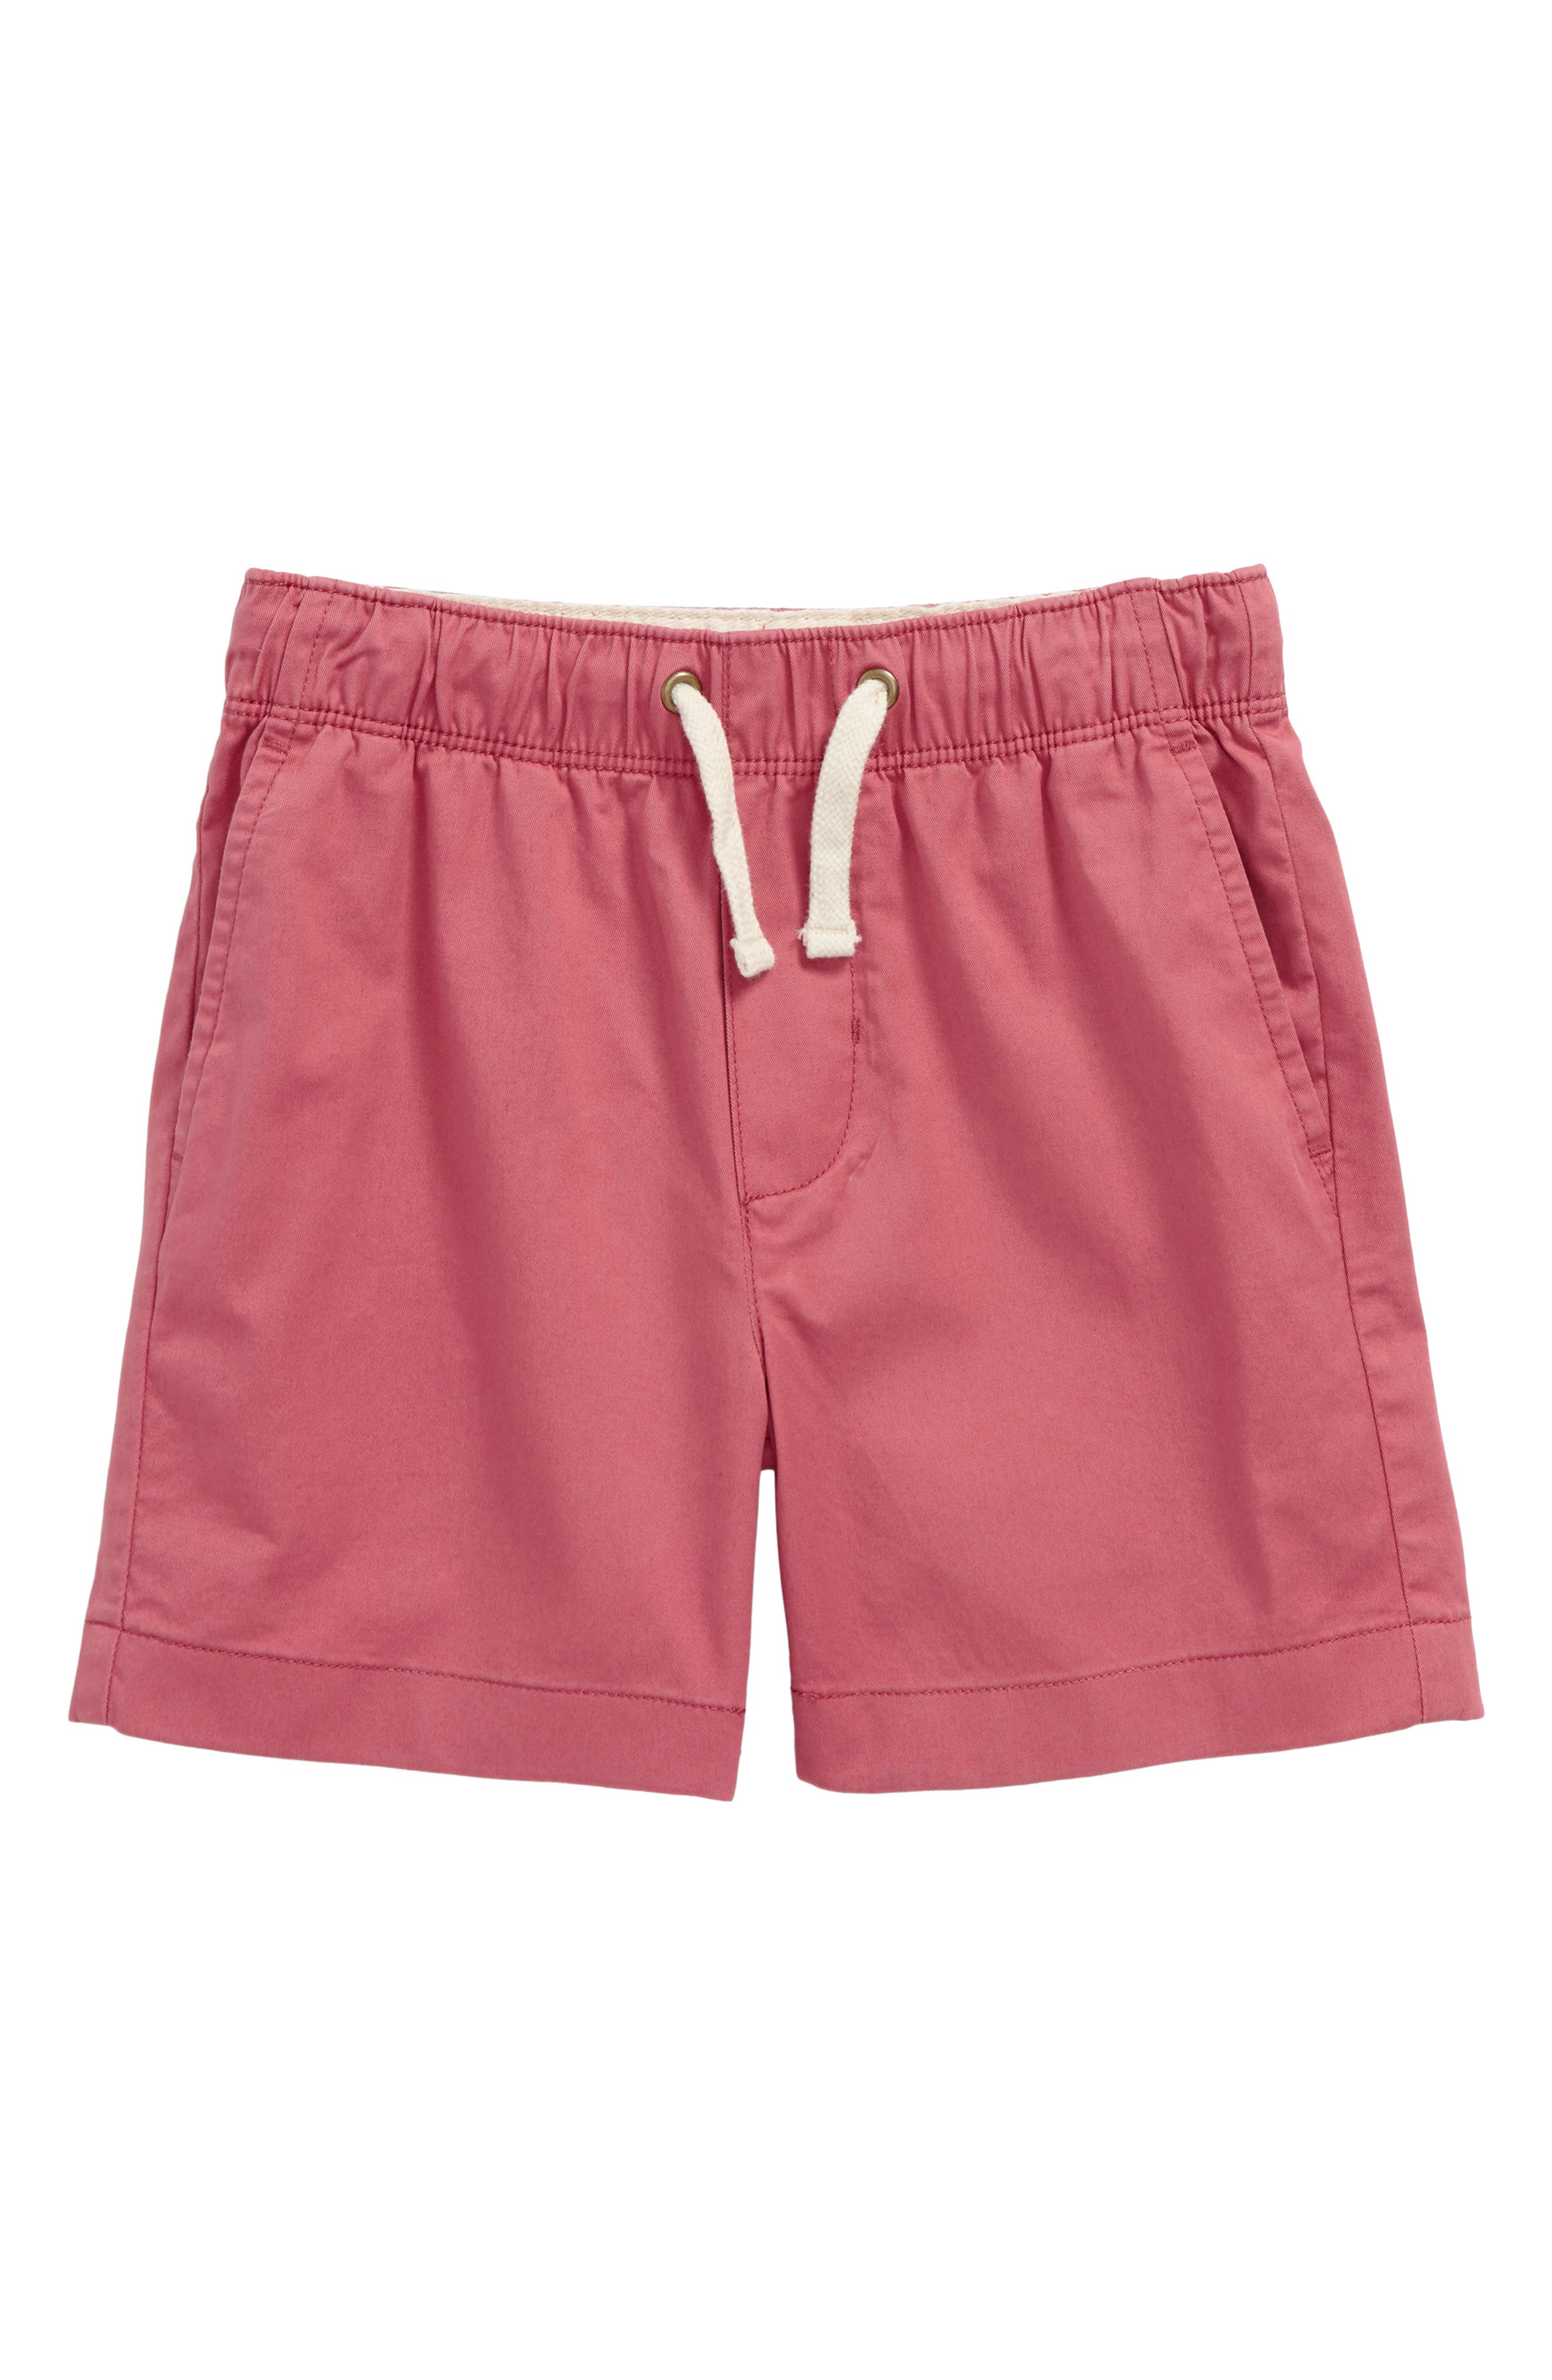 Tie Front Dock Shorts,                         Main,                         color, Pale Barn